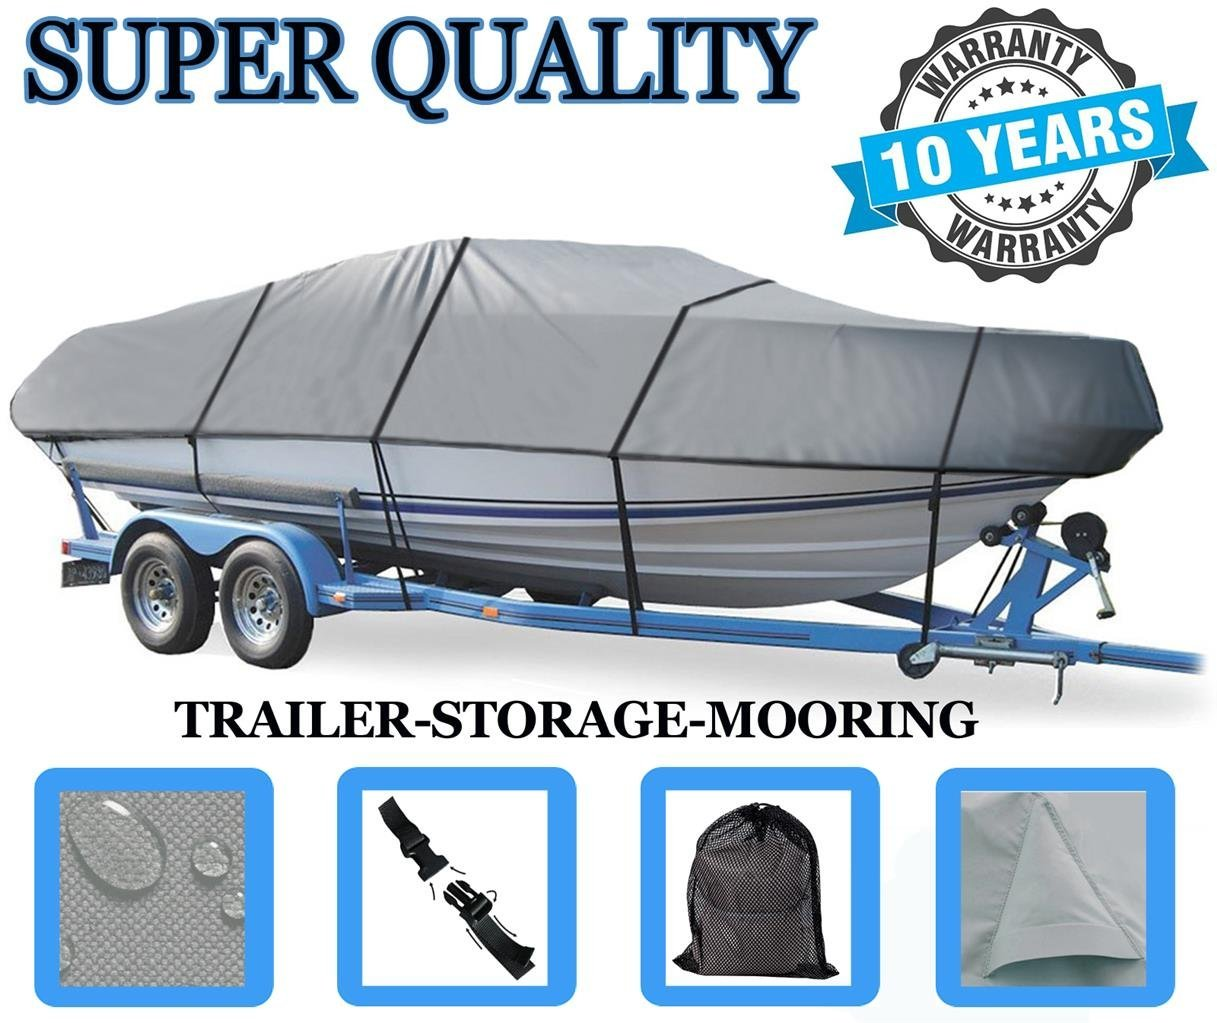 SBU BOAT COVER FOR GENERATION III G3 HP 190 2002 Heavy-Duty Great Quality